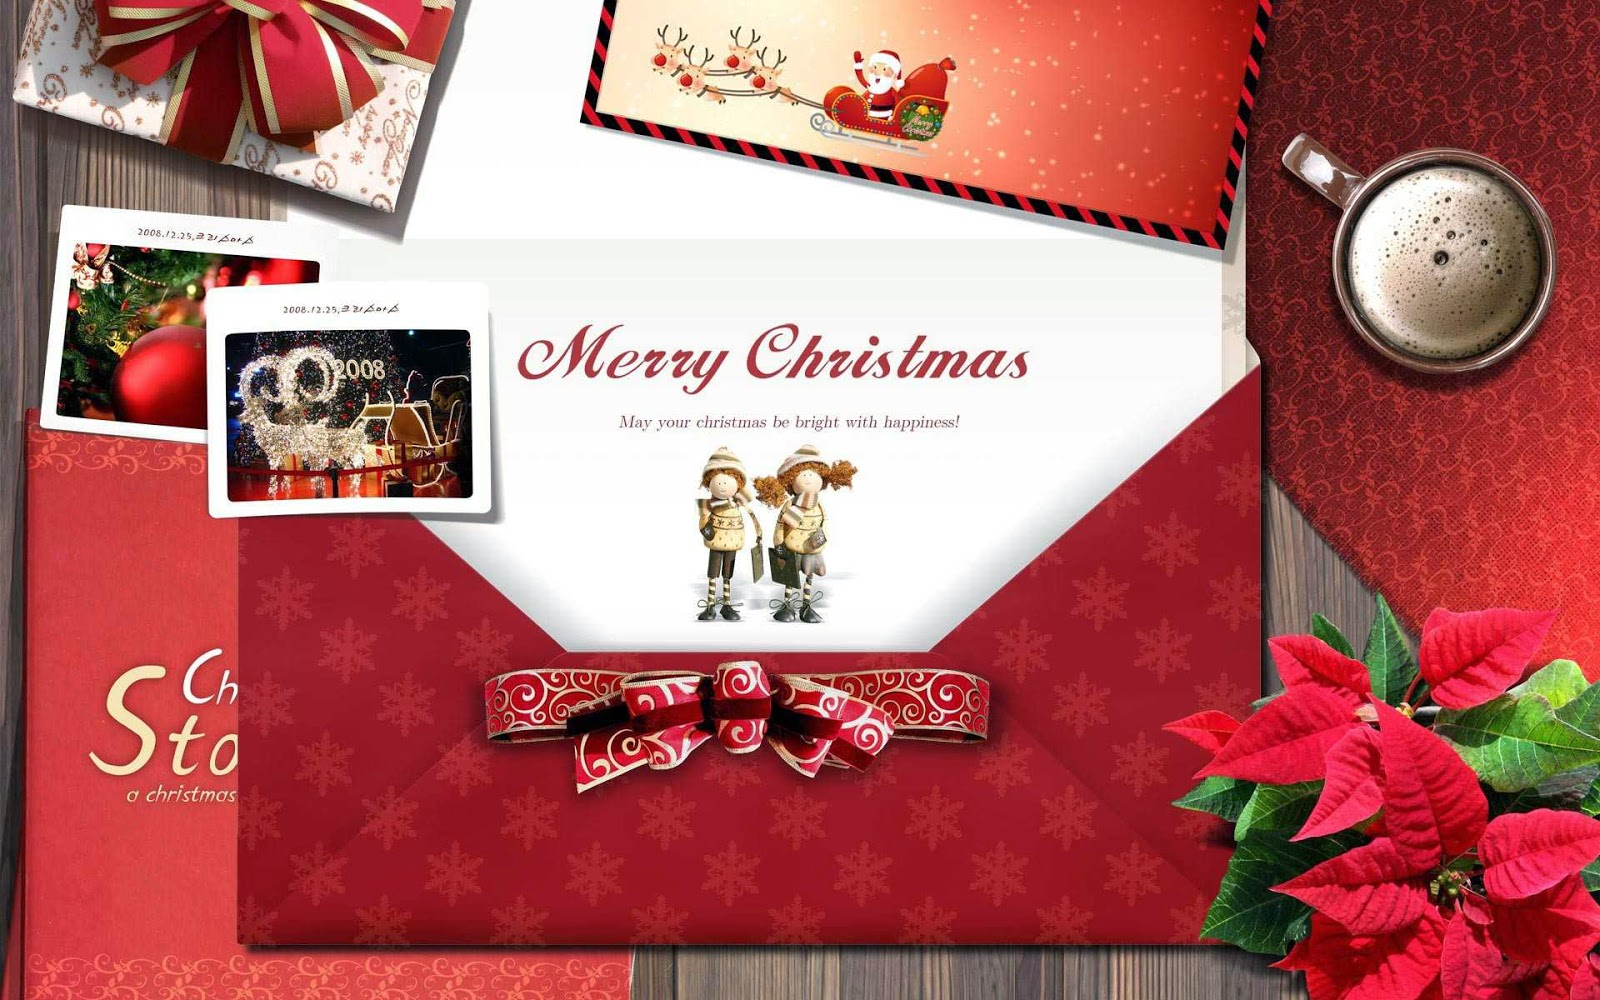 Christmas-greeting-card-pattern-image-new-latest-model-theme-style-image-picture.jpg